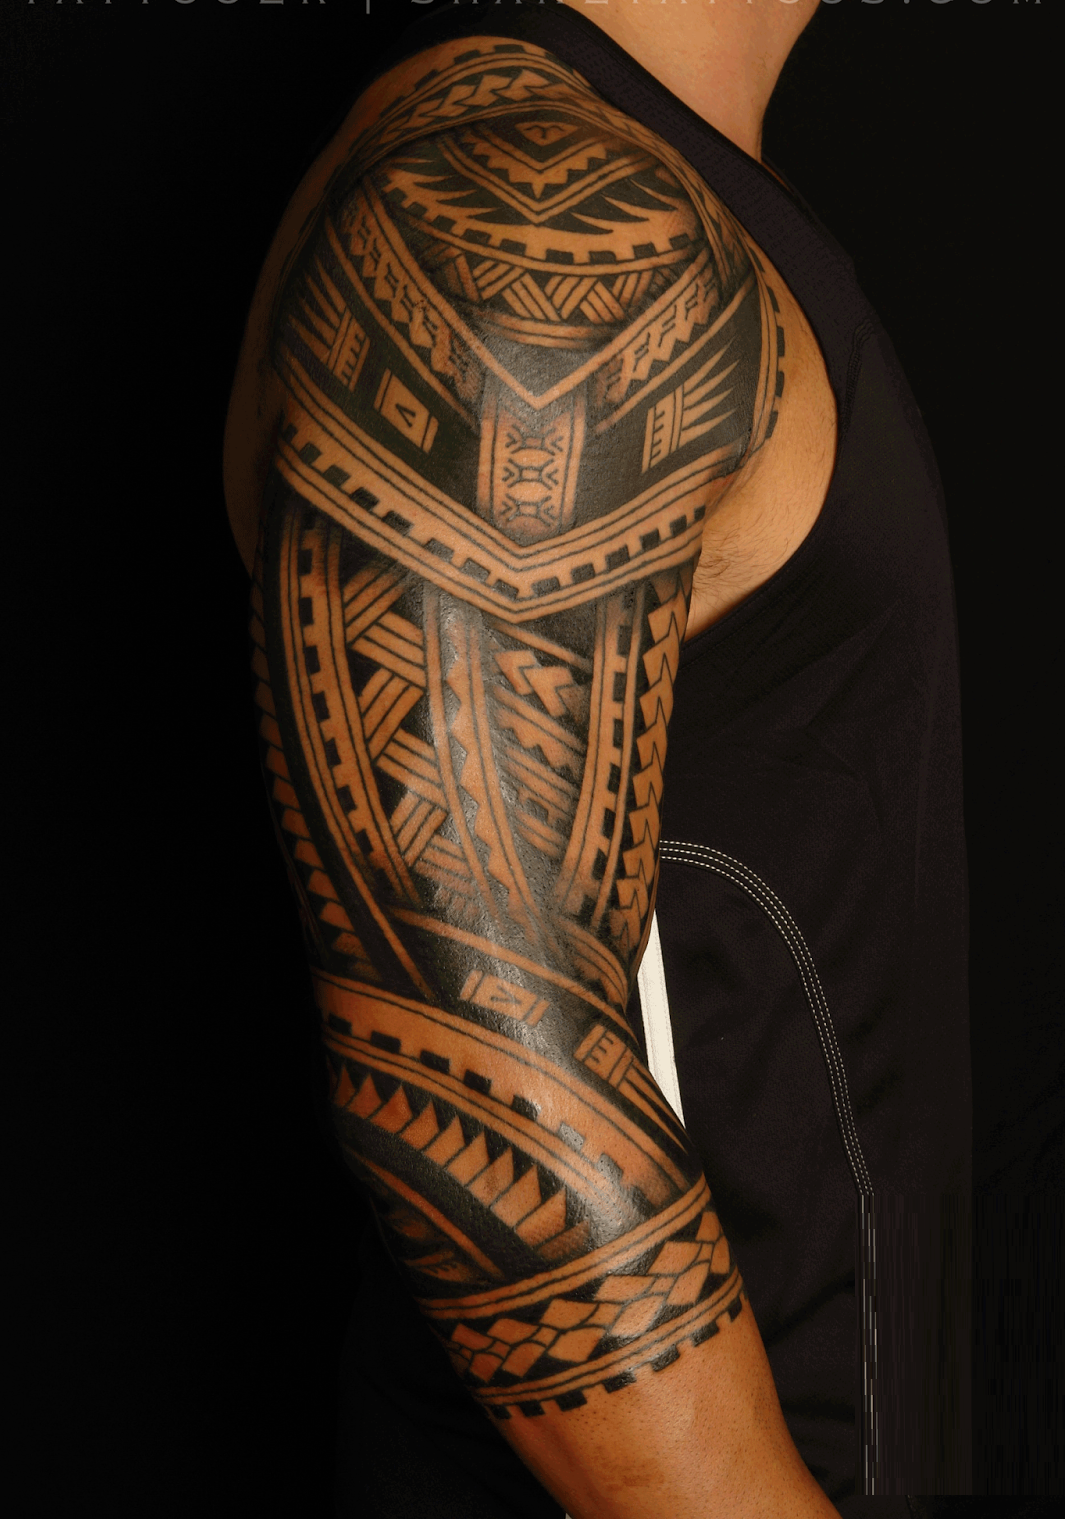 faux tatouage maori arms tattoo pinterest tatoo tattoo and maori. Black Bedroom Furniture Sets. Home Design Ideas